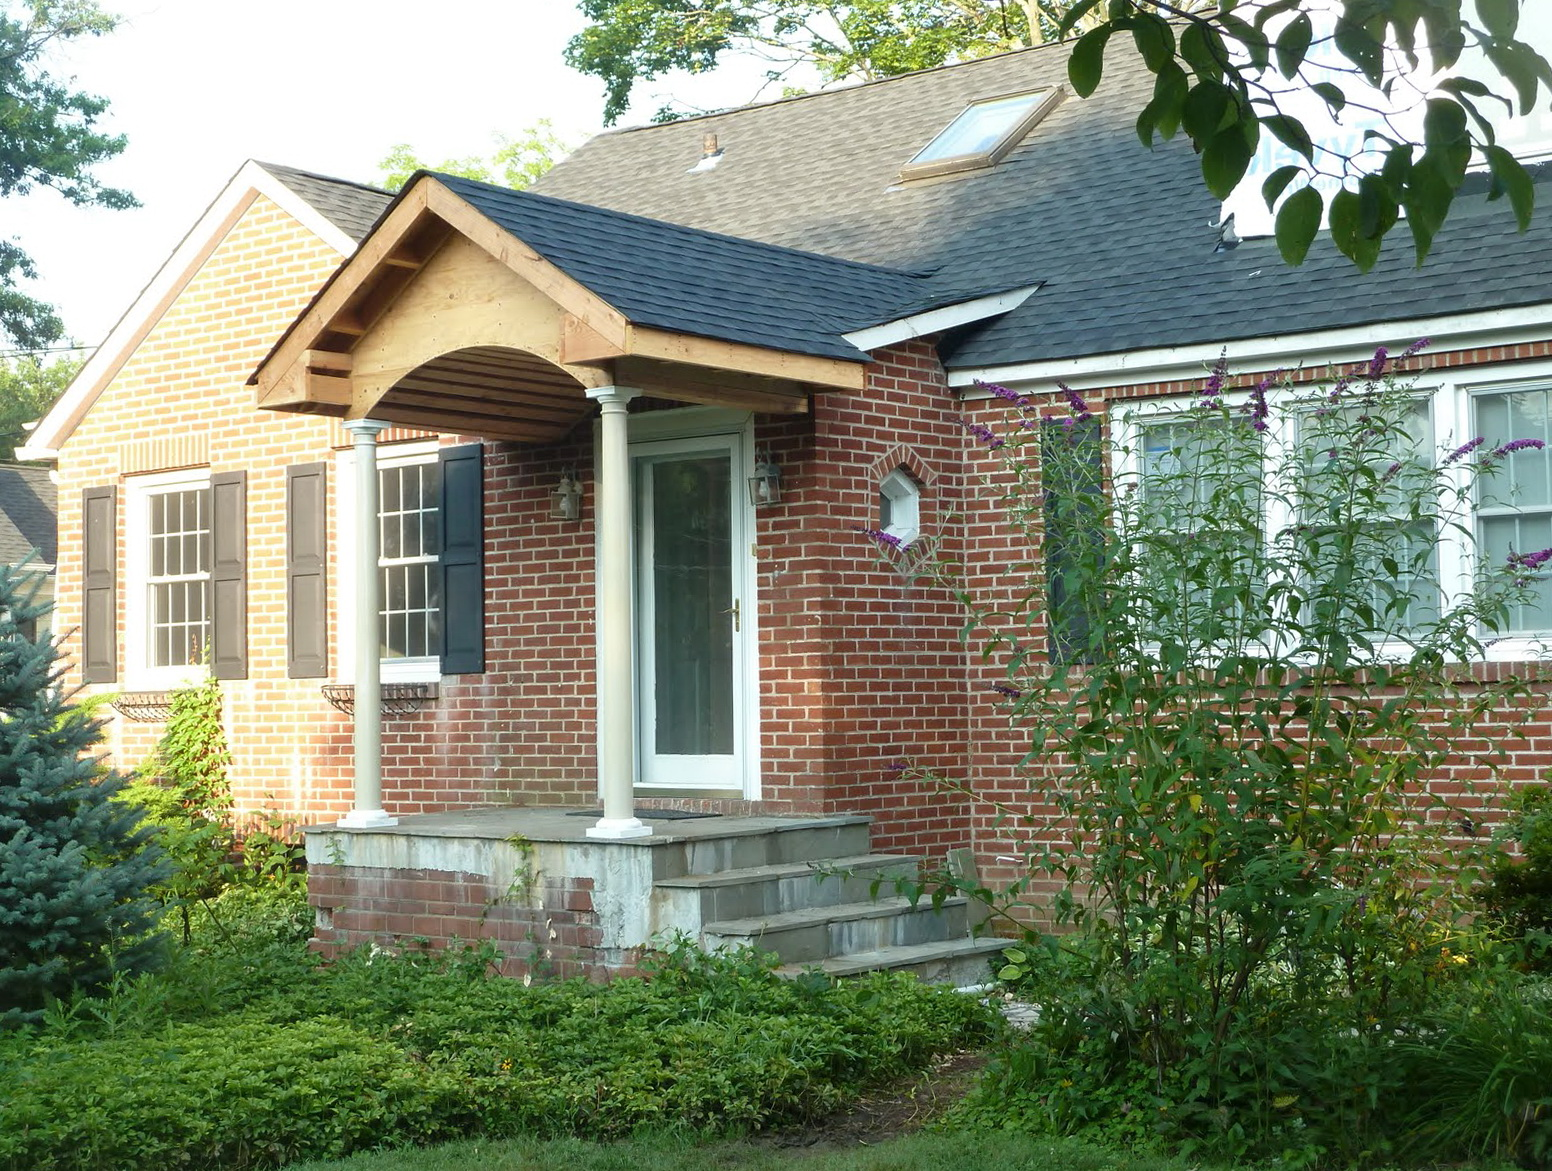 house plans with front porch and dormers home design ideas